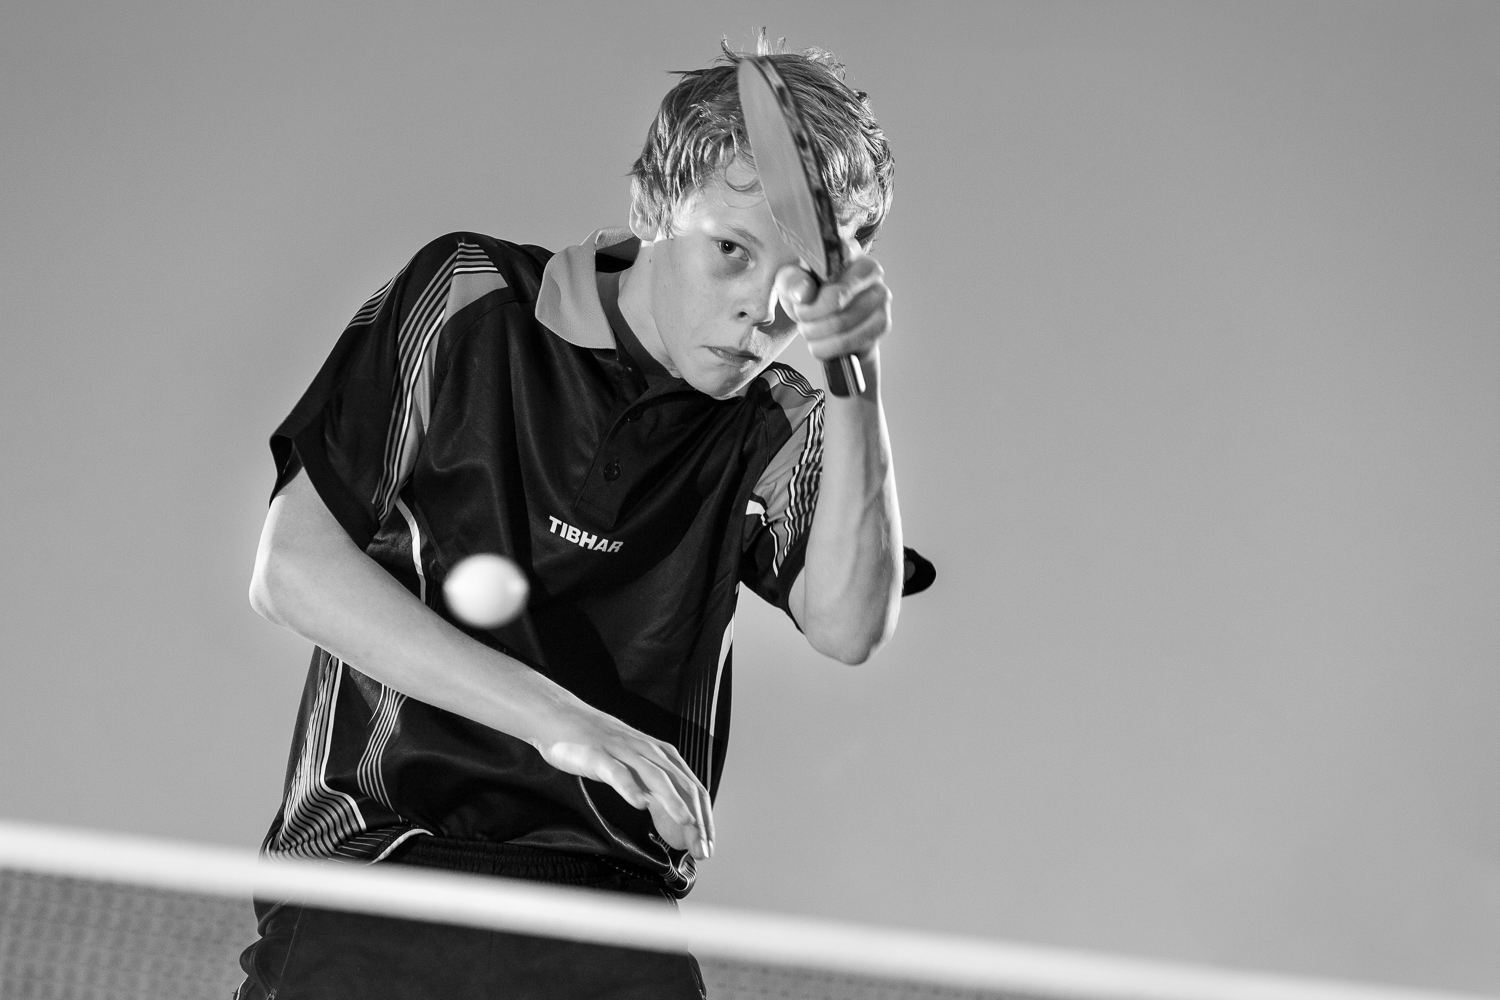 Portrait of a young, and upcoming tabletennis player, training  in Zwolle  for the Olympics.